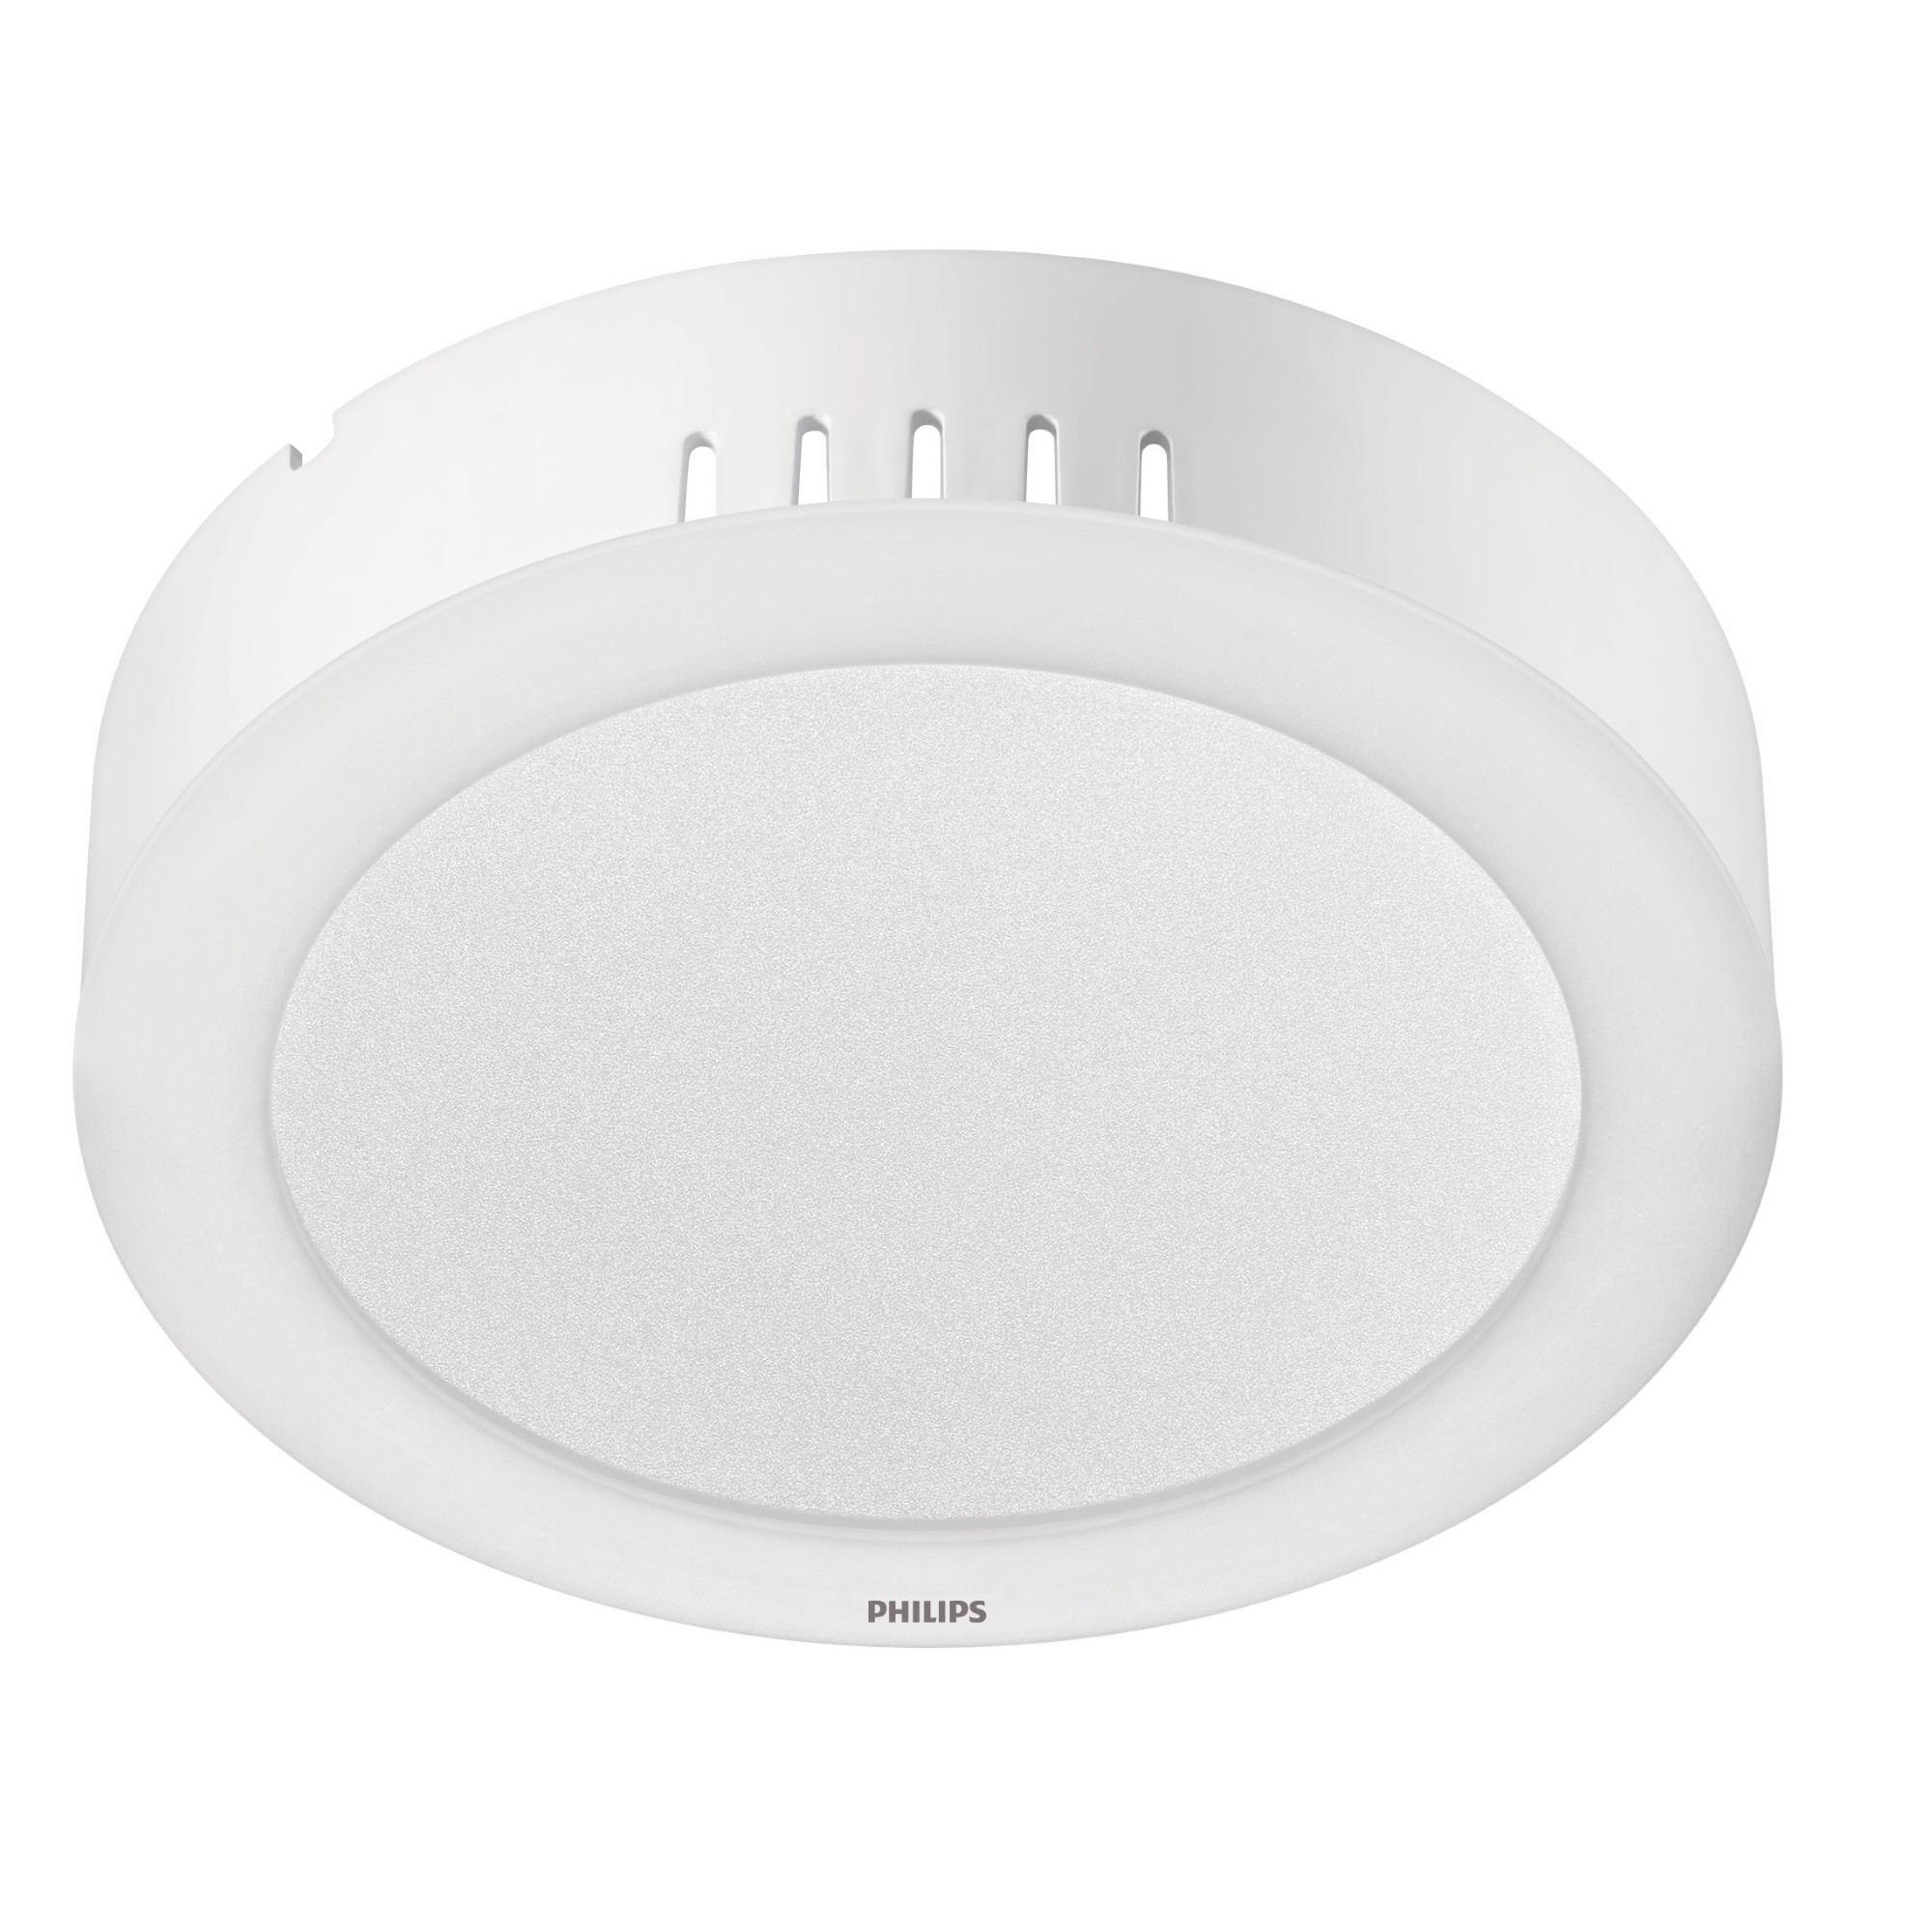 Painel LED Redondo 15W Quente 1550lm - Philips